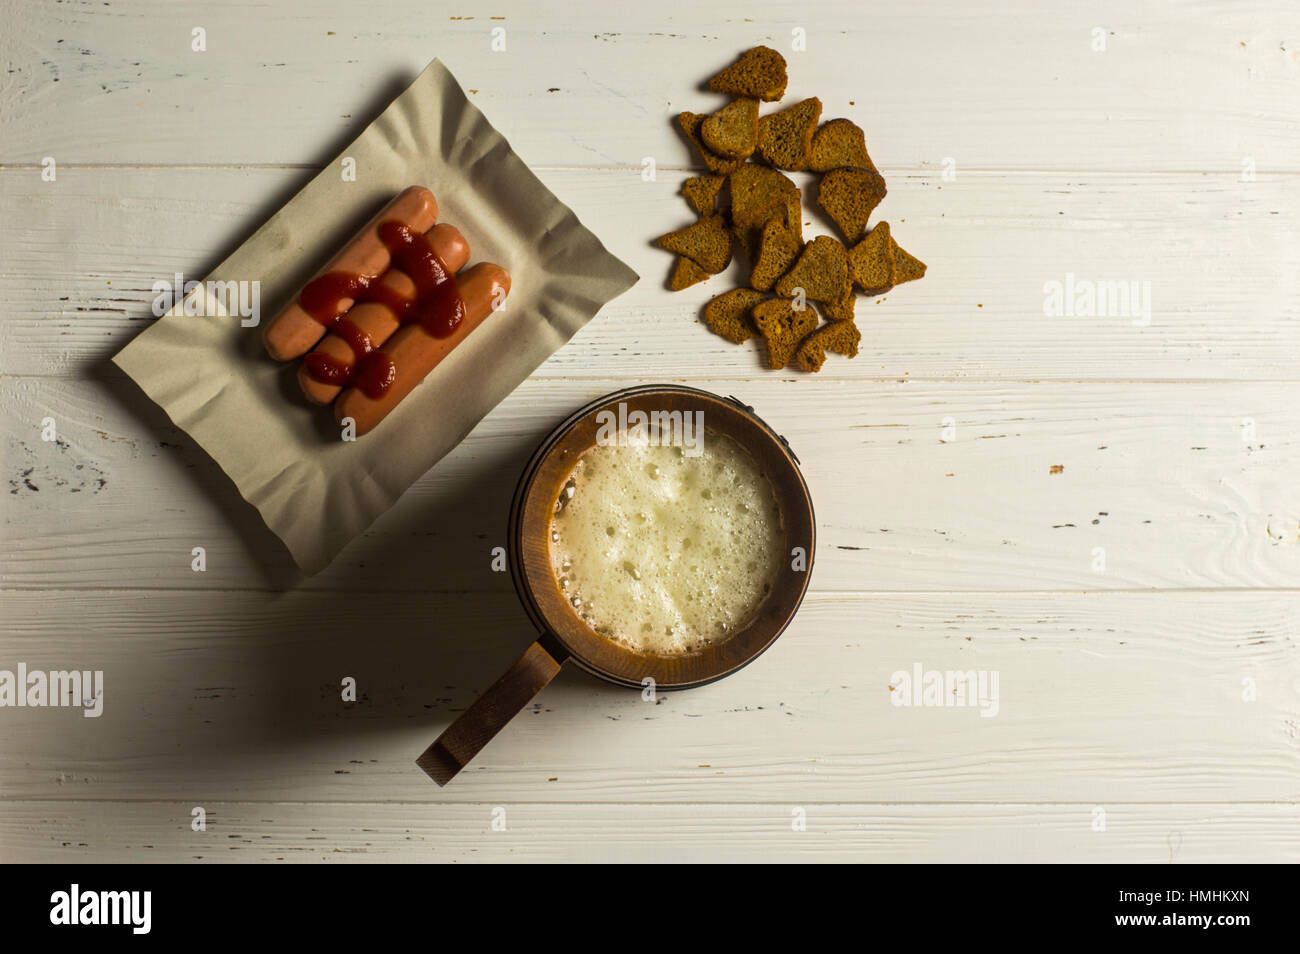 Mug of Beer, Sausage, and Dried Bread on Wooden background Stock Photo